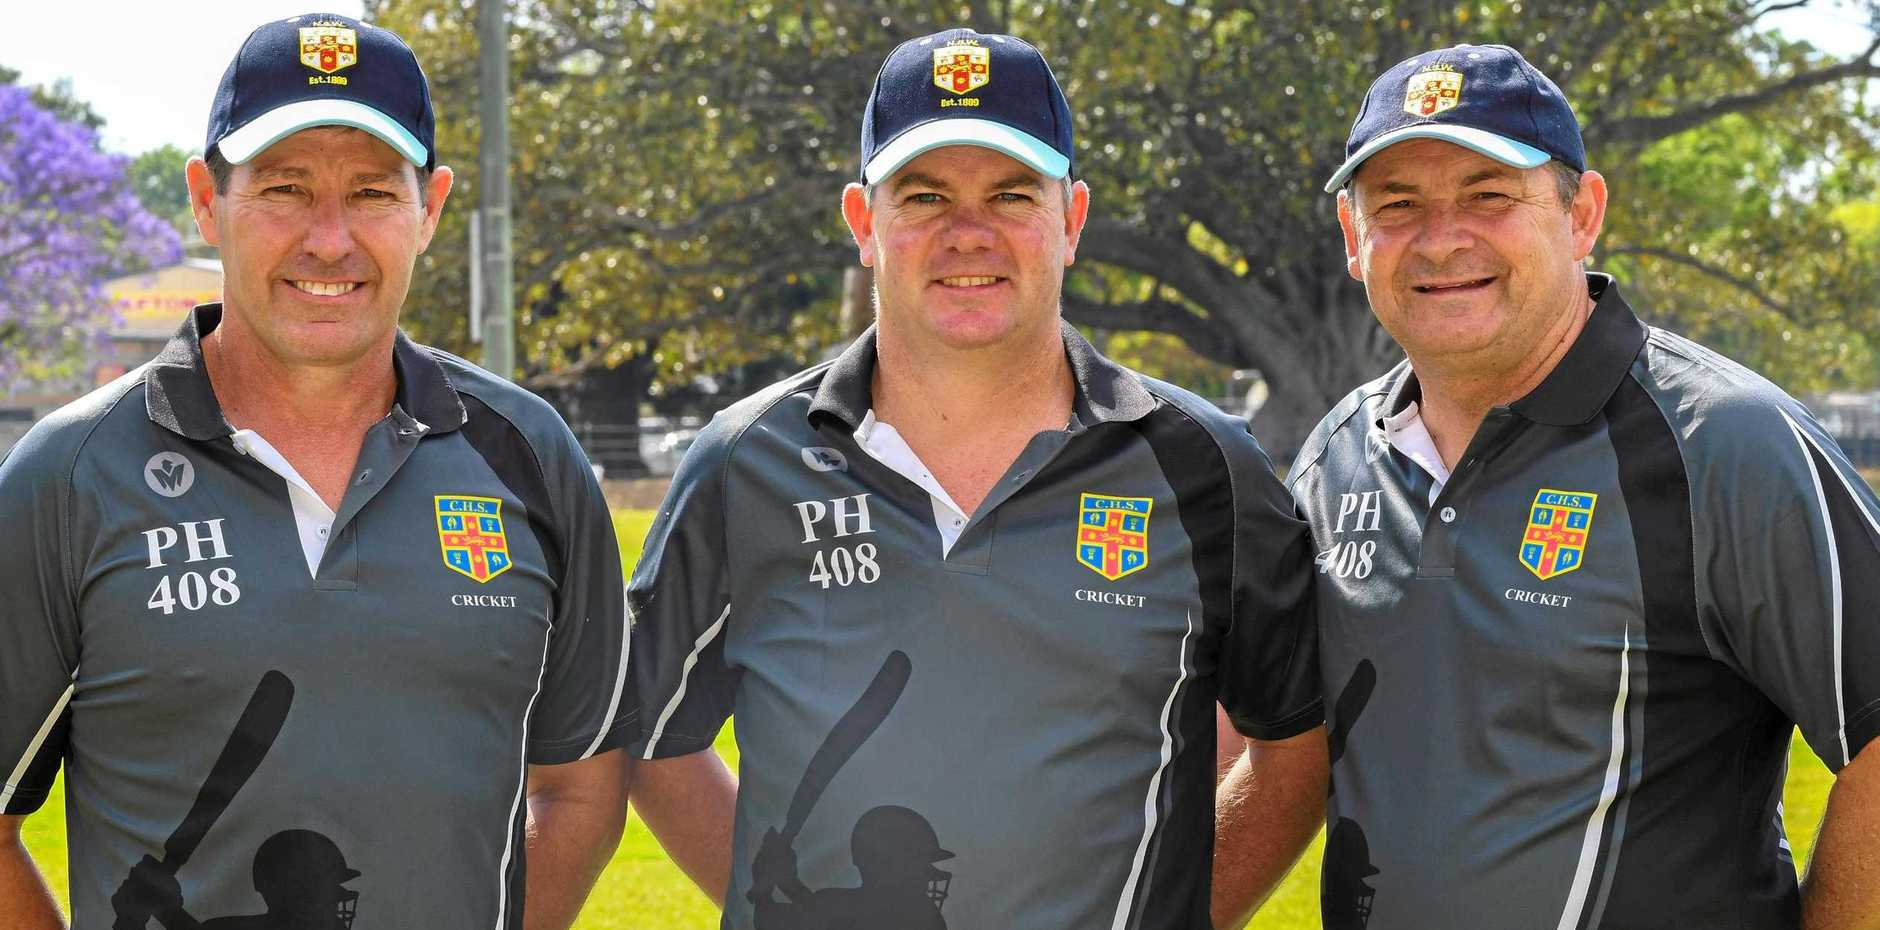 NICE TOUCH: Jeremy Moors, Terry Willis and NSW CHS Cricket convener Damian Toohey  wearing Phillip Hughes  shirts in Grafton this week as a tribute to the former CHS and Test cricketer.